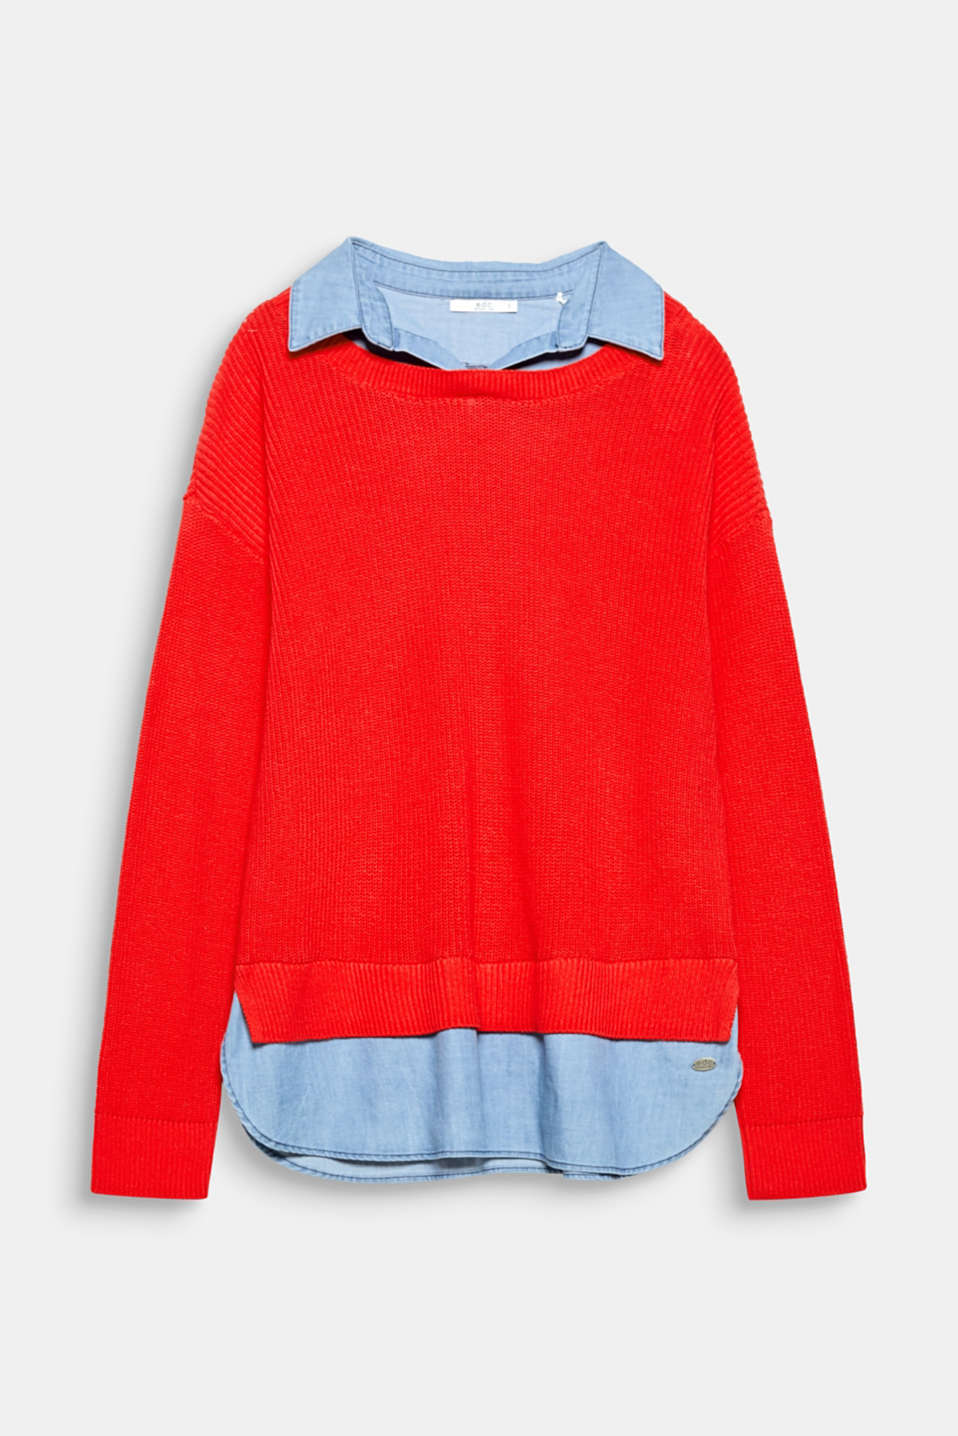 Simply pull it on and look seriously stylish: Rib knit jumper with blouse details in soft denim.